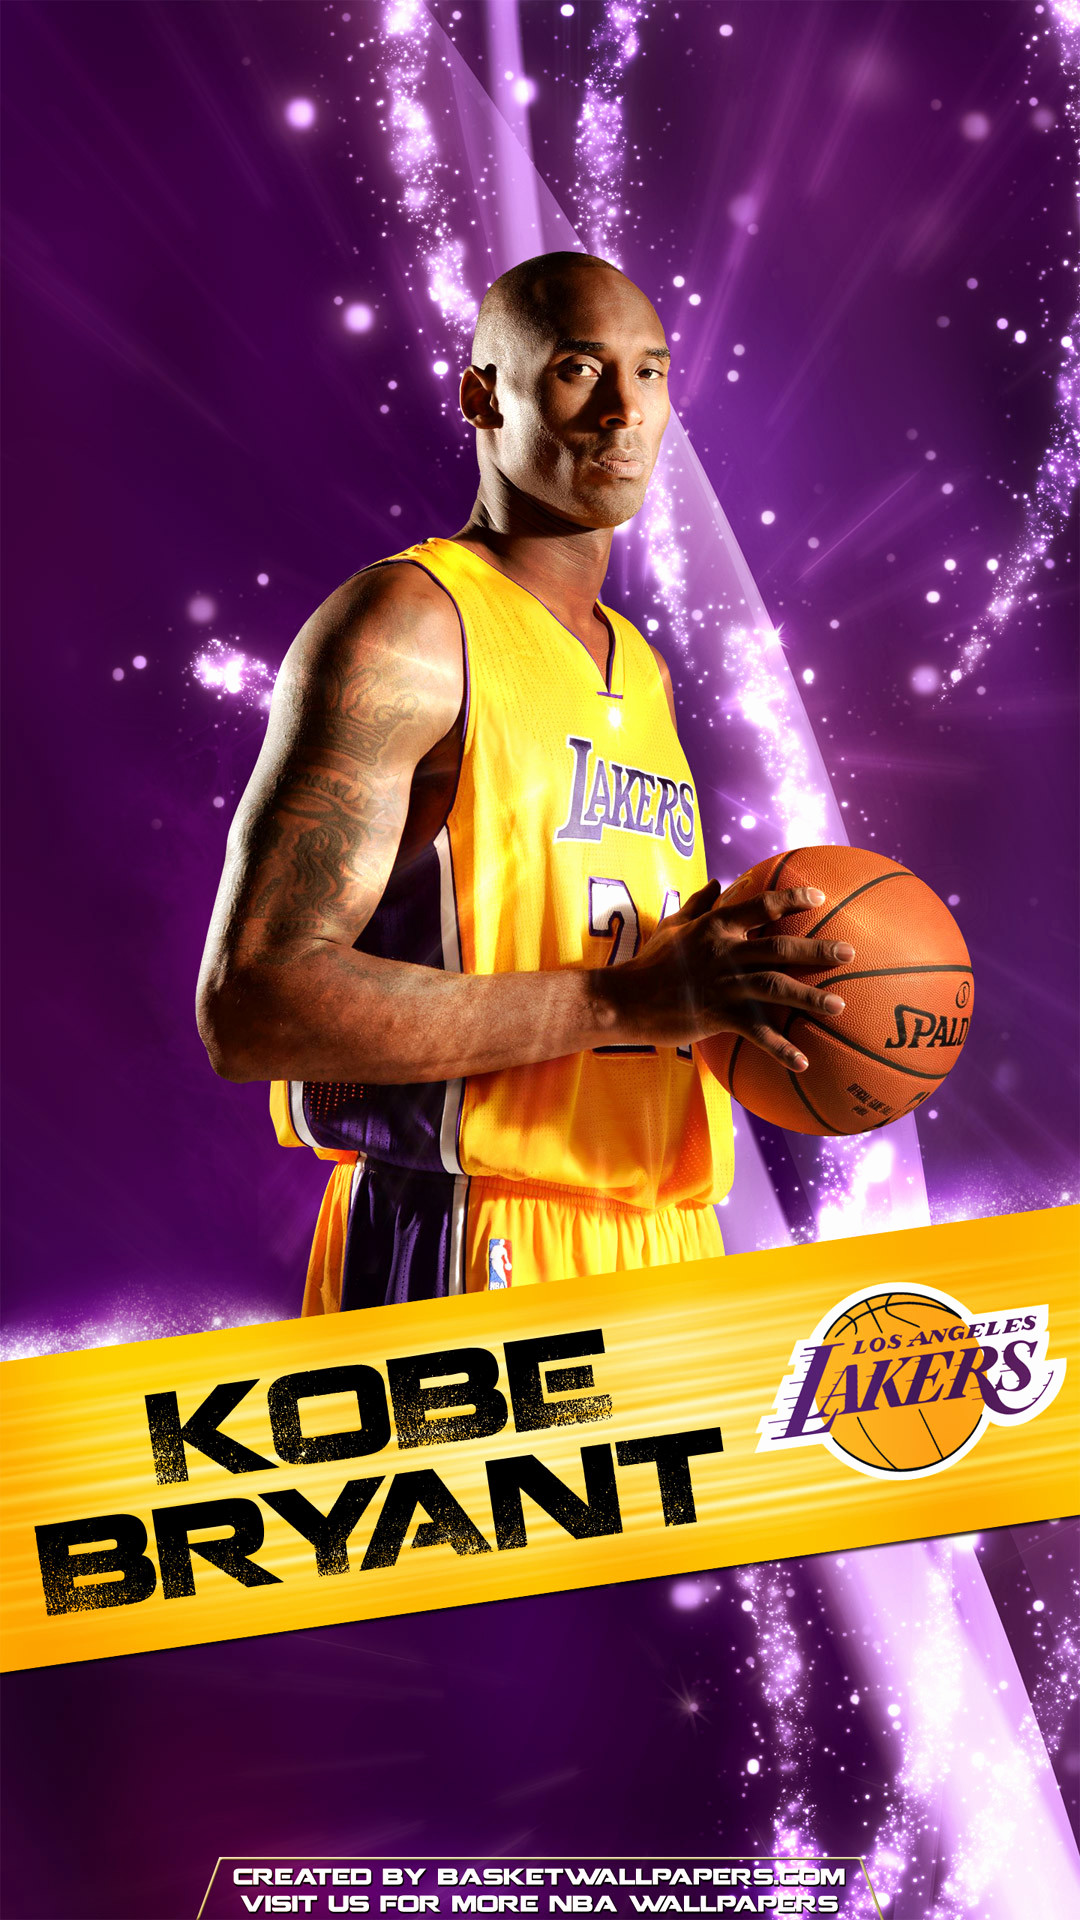 Lakers Logo Wallpapers Hd Wallpaper Collections 4kwallpaper Wiki